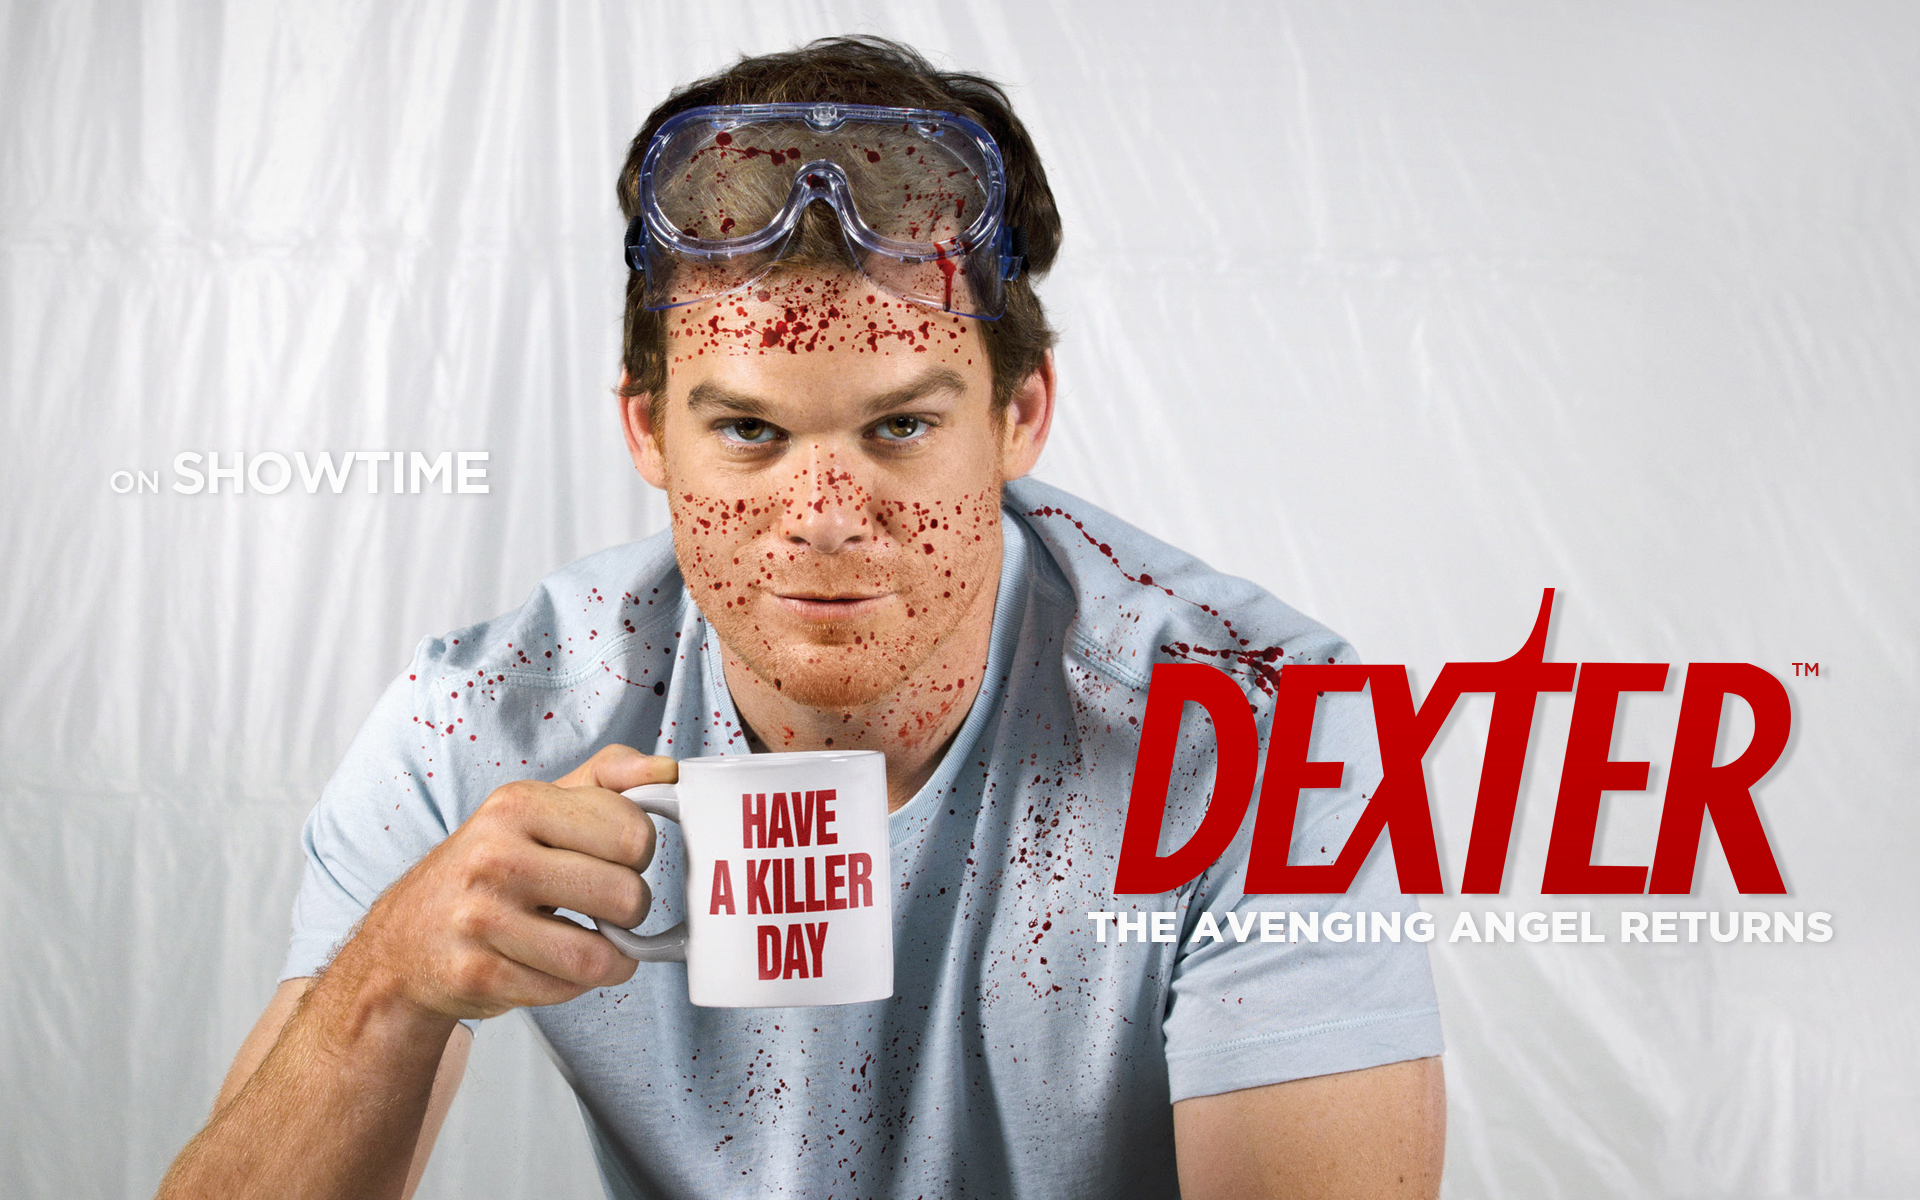 The Unworthy Dexter